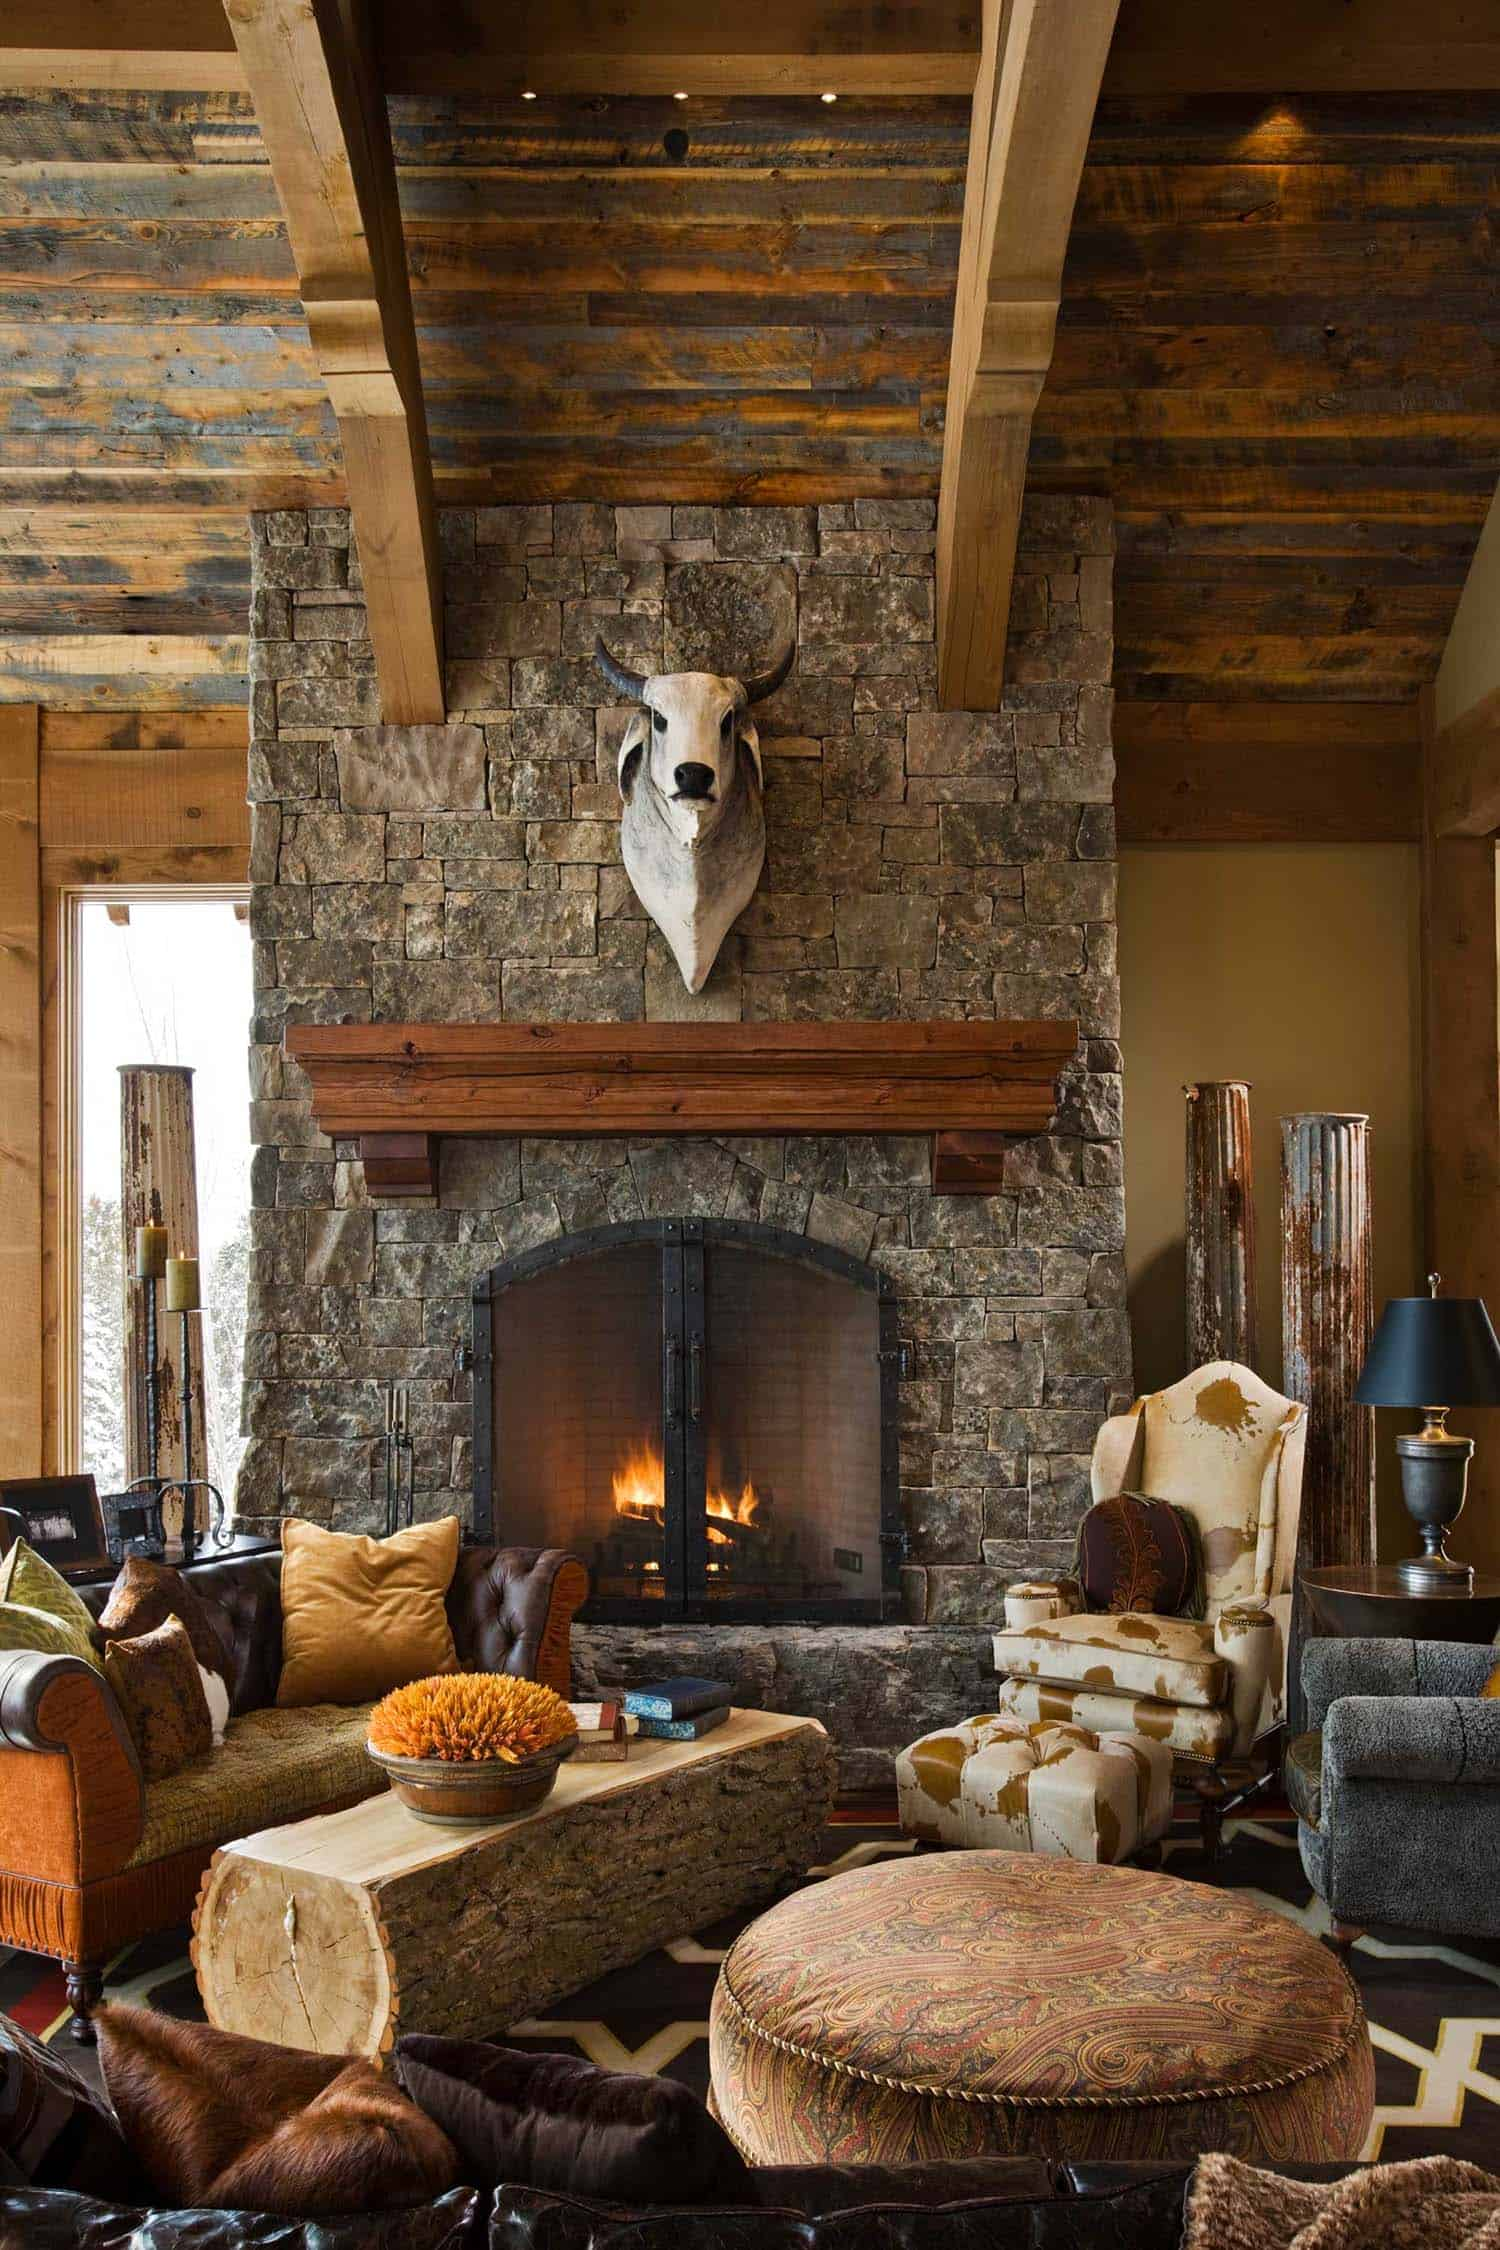 Enchanting Modern Rustic Dwelling In The Rugged Mountains Of Big Sky